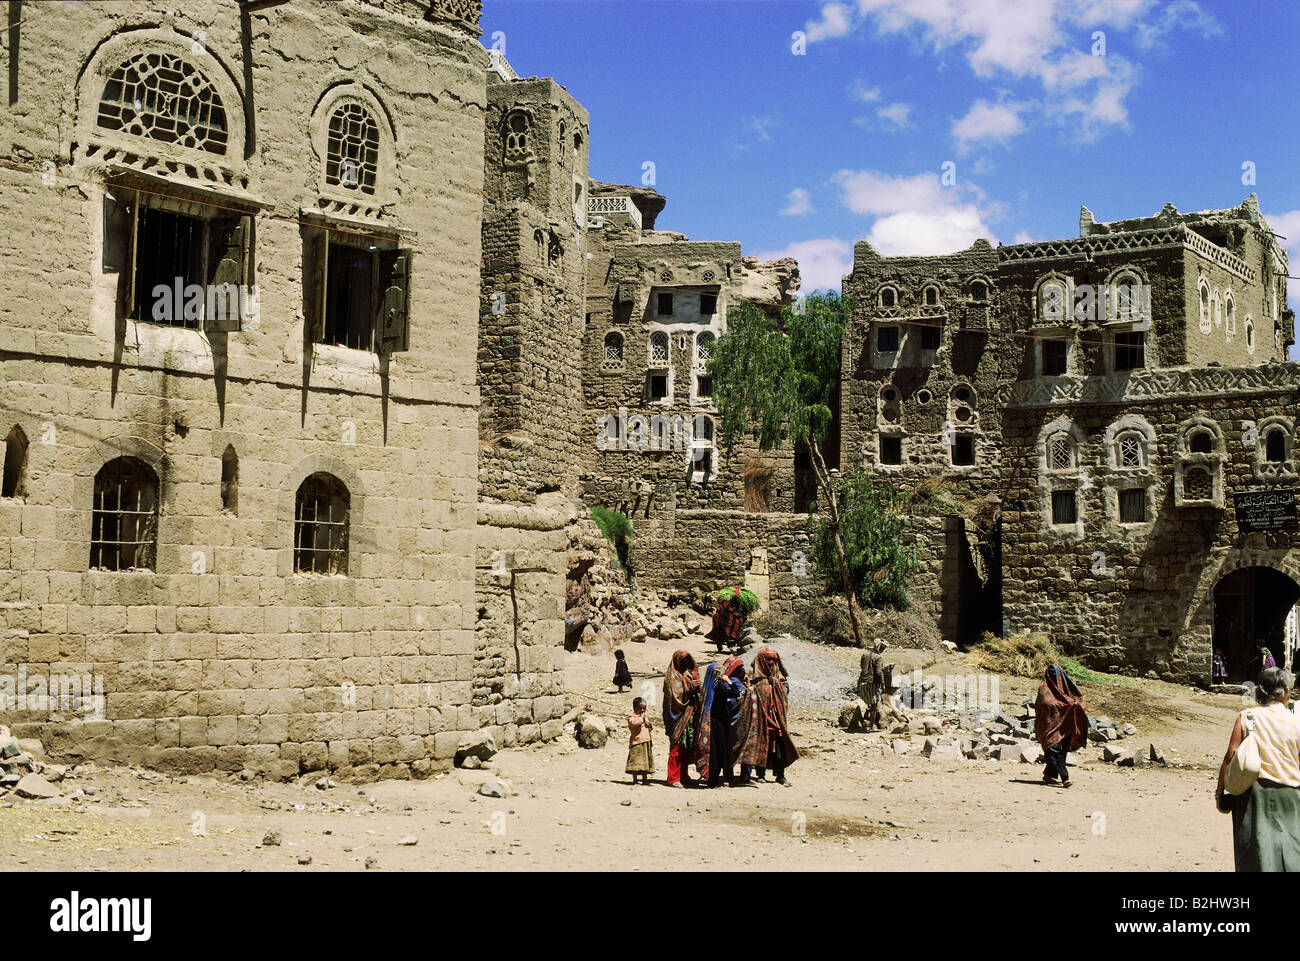 geography / travel, Yemen, Wadi Dhar, settlement, square with women and children - Stock Image